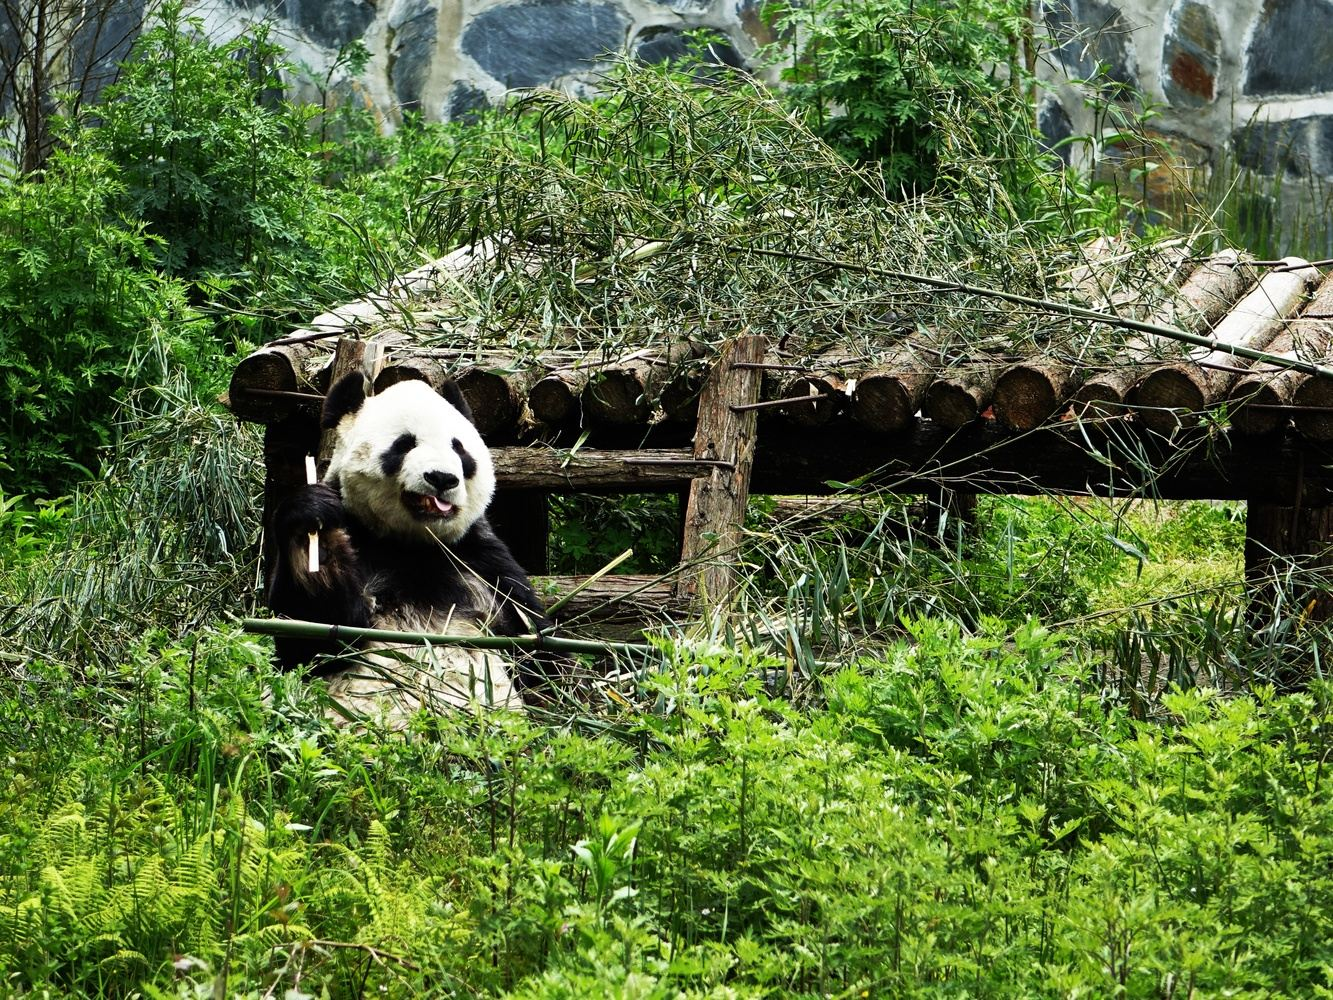 Wildness Training and Reintroduction of Giant Panda